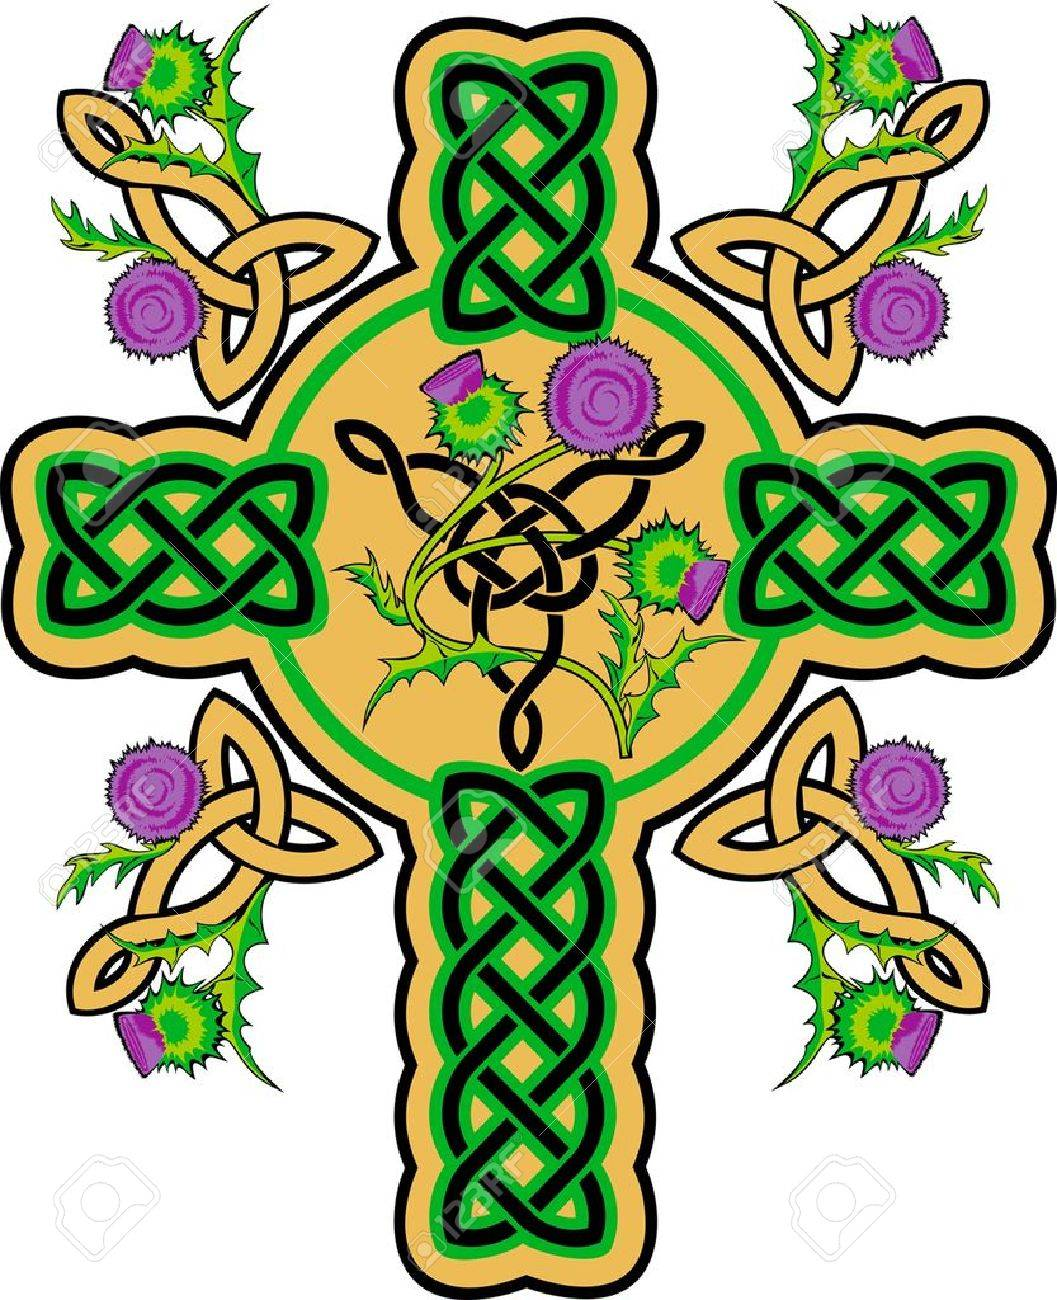 1331 Thistle Stock Vector Illustration And Royalty Free Thistle inside Free Clip Art Cross Flowers